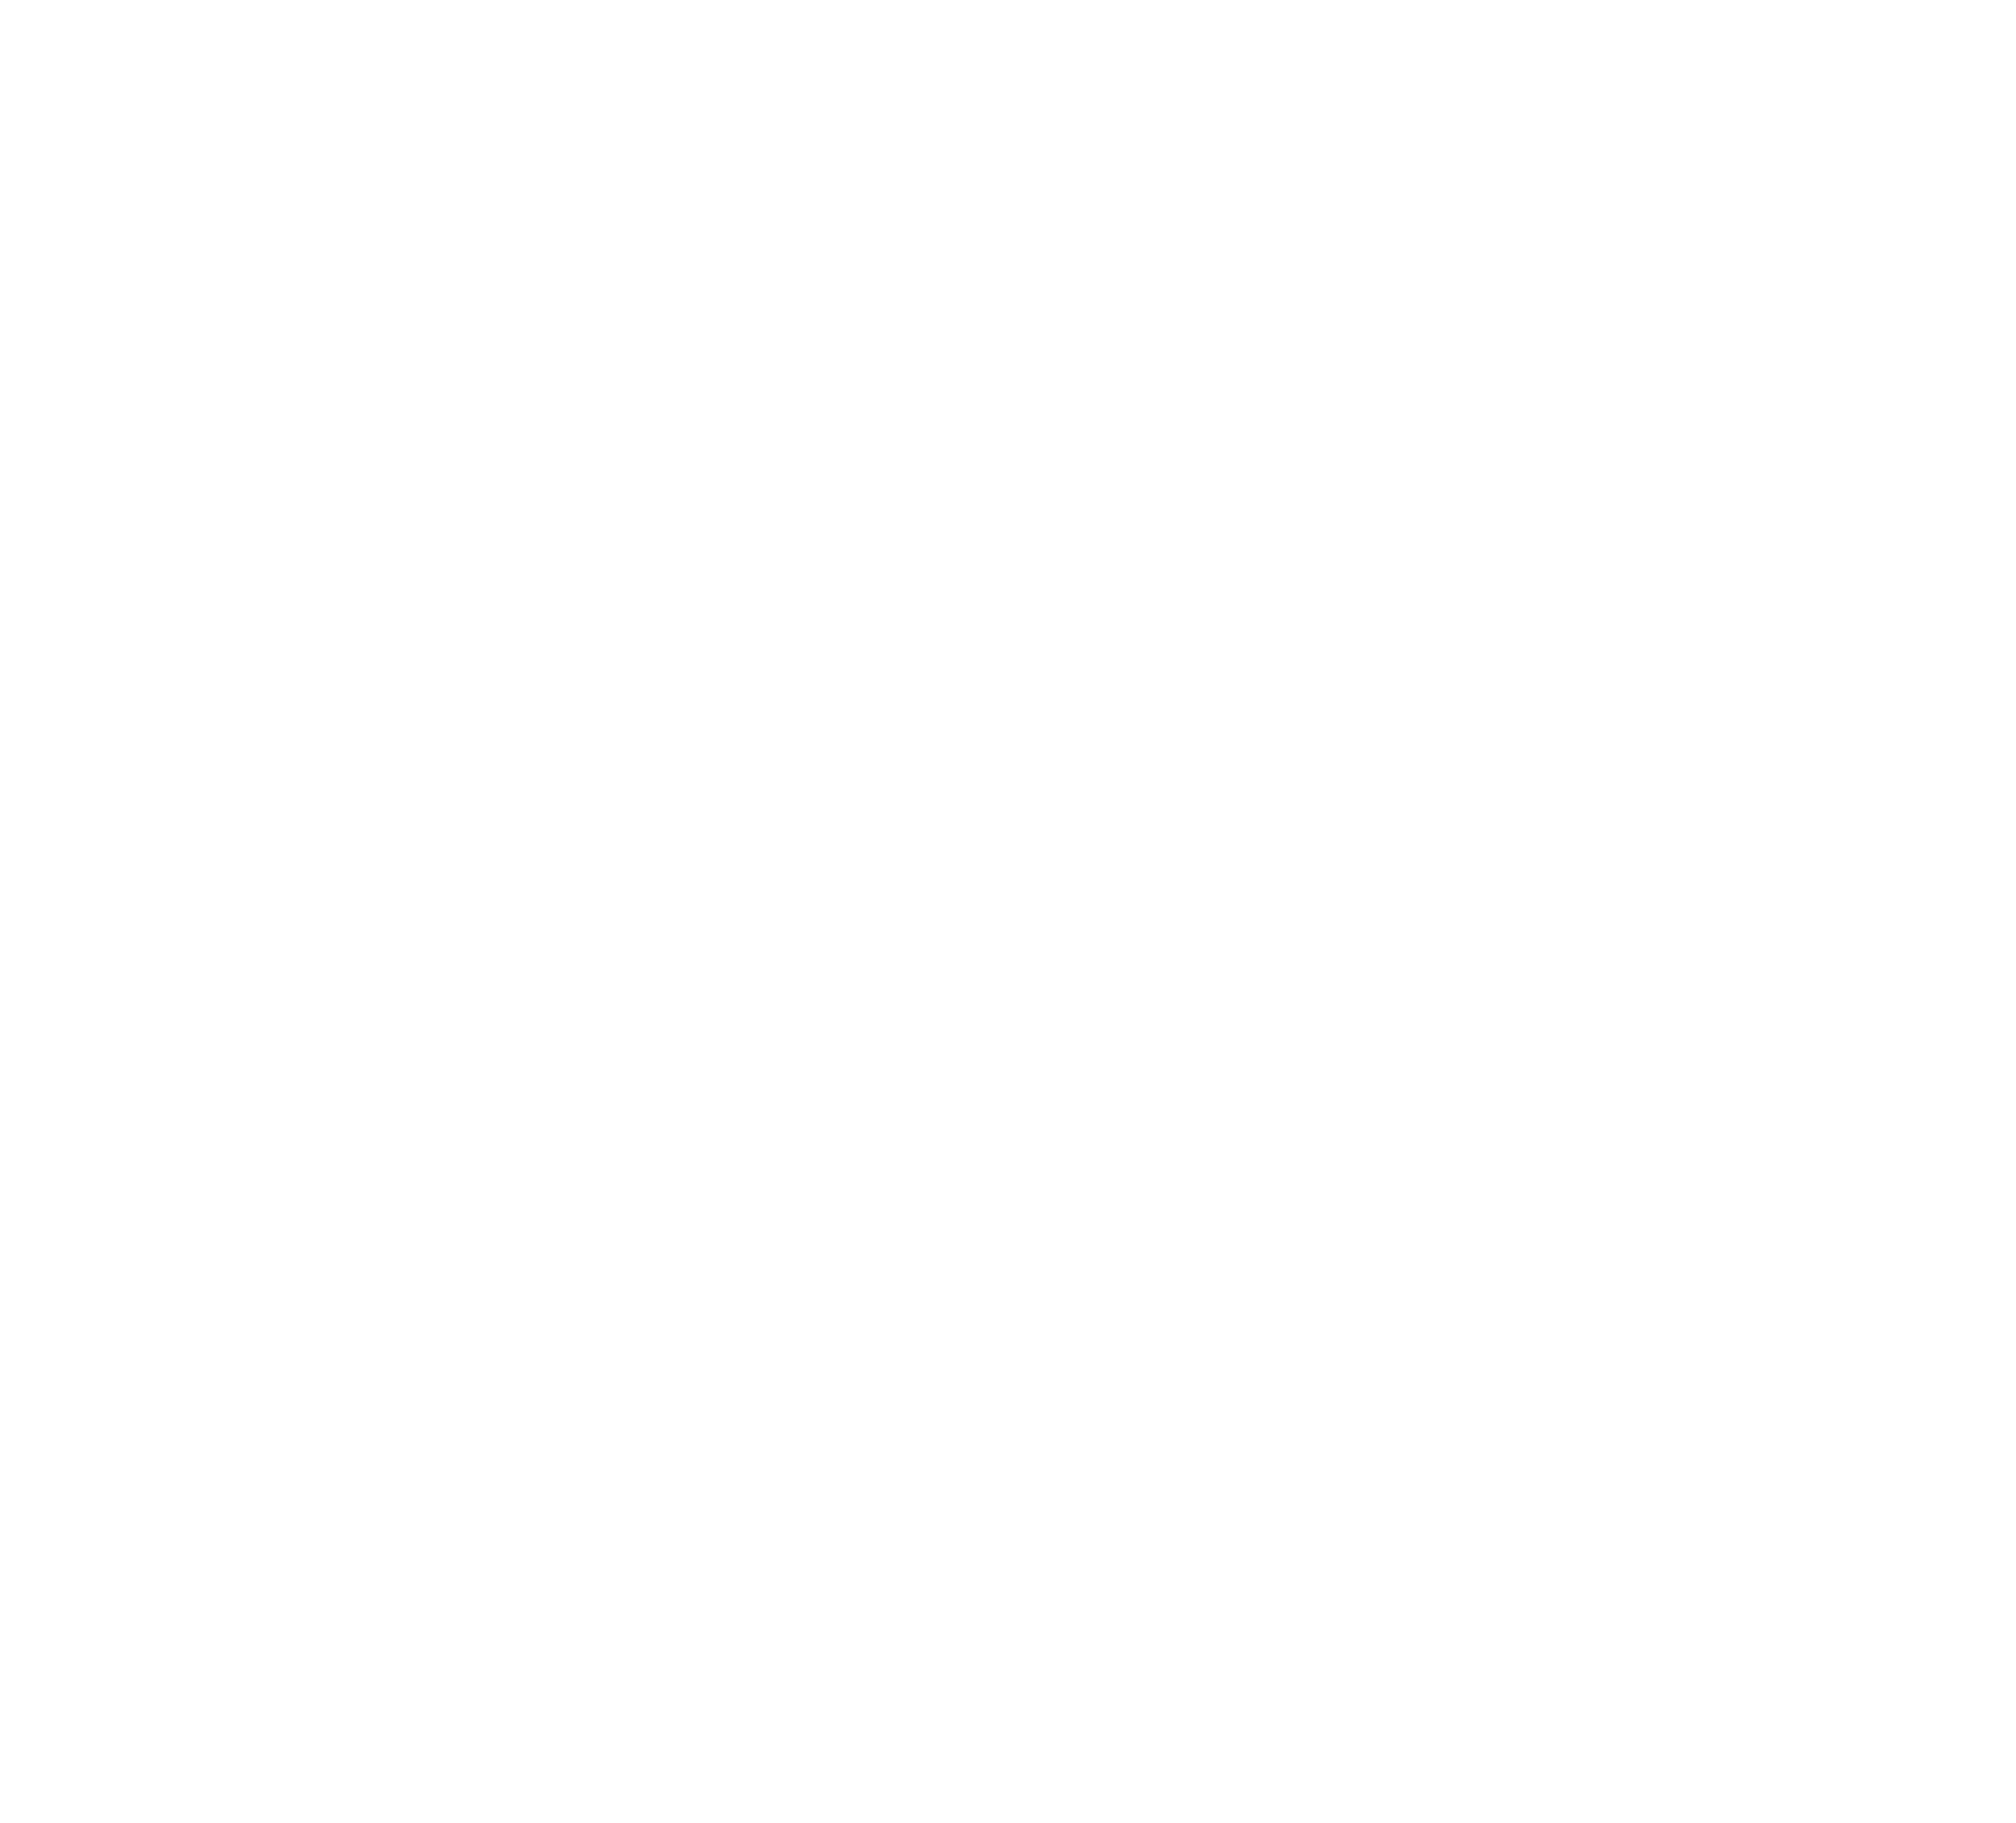 https://santedentaireso.com/wp-content/uploads/2018/08/SO-Santé-Dentaire-W.png